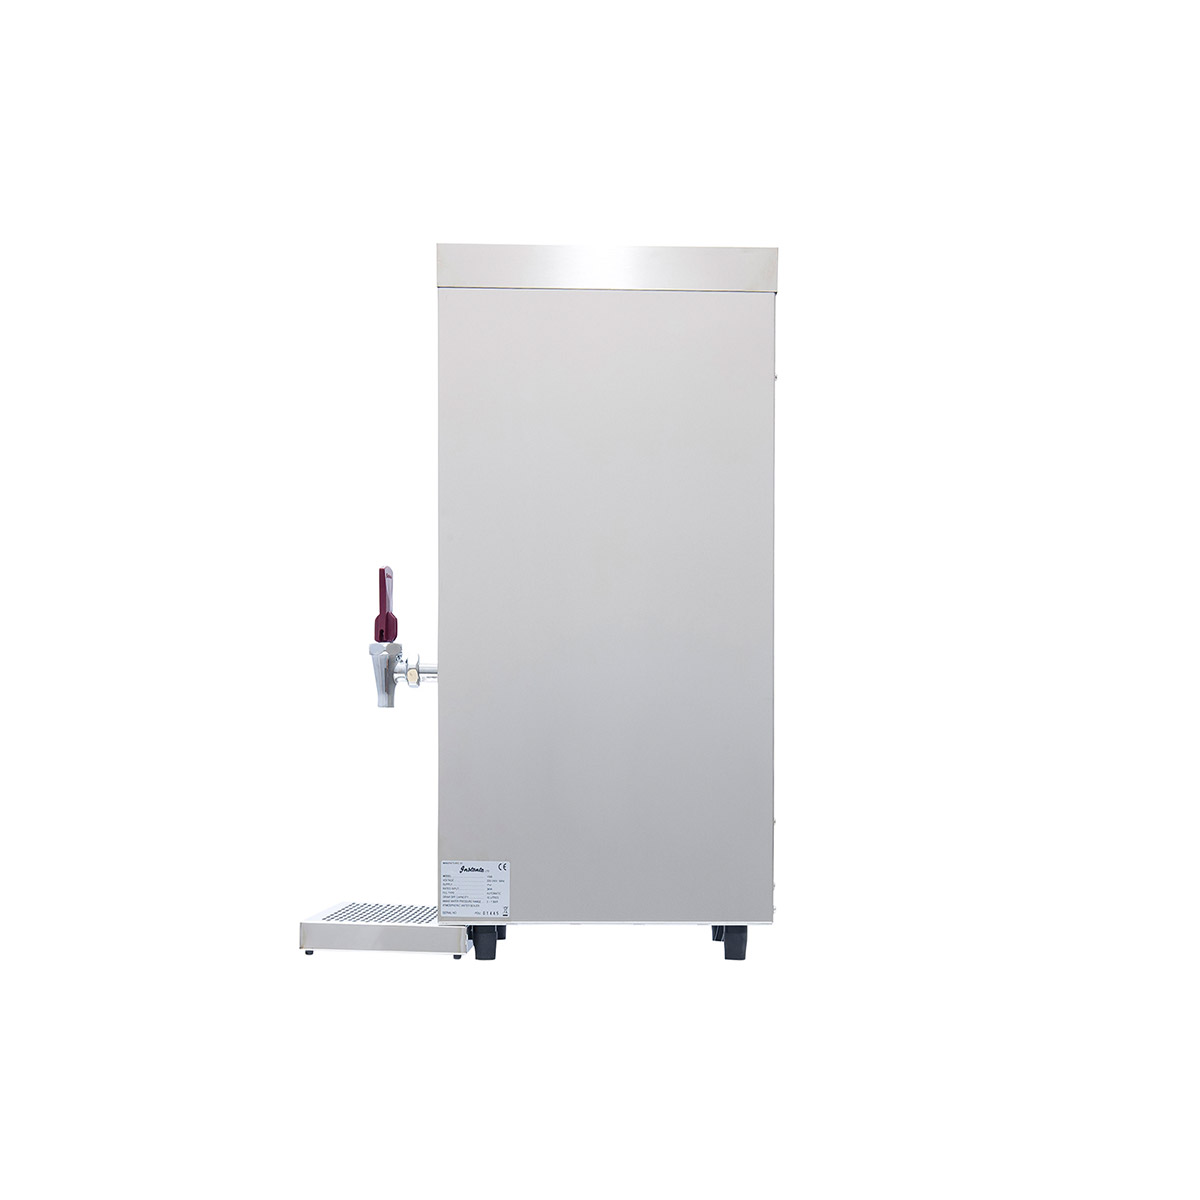 Instanta Sureflow Counter Top Water Boiler CTS10 1500POU 10Ltr